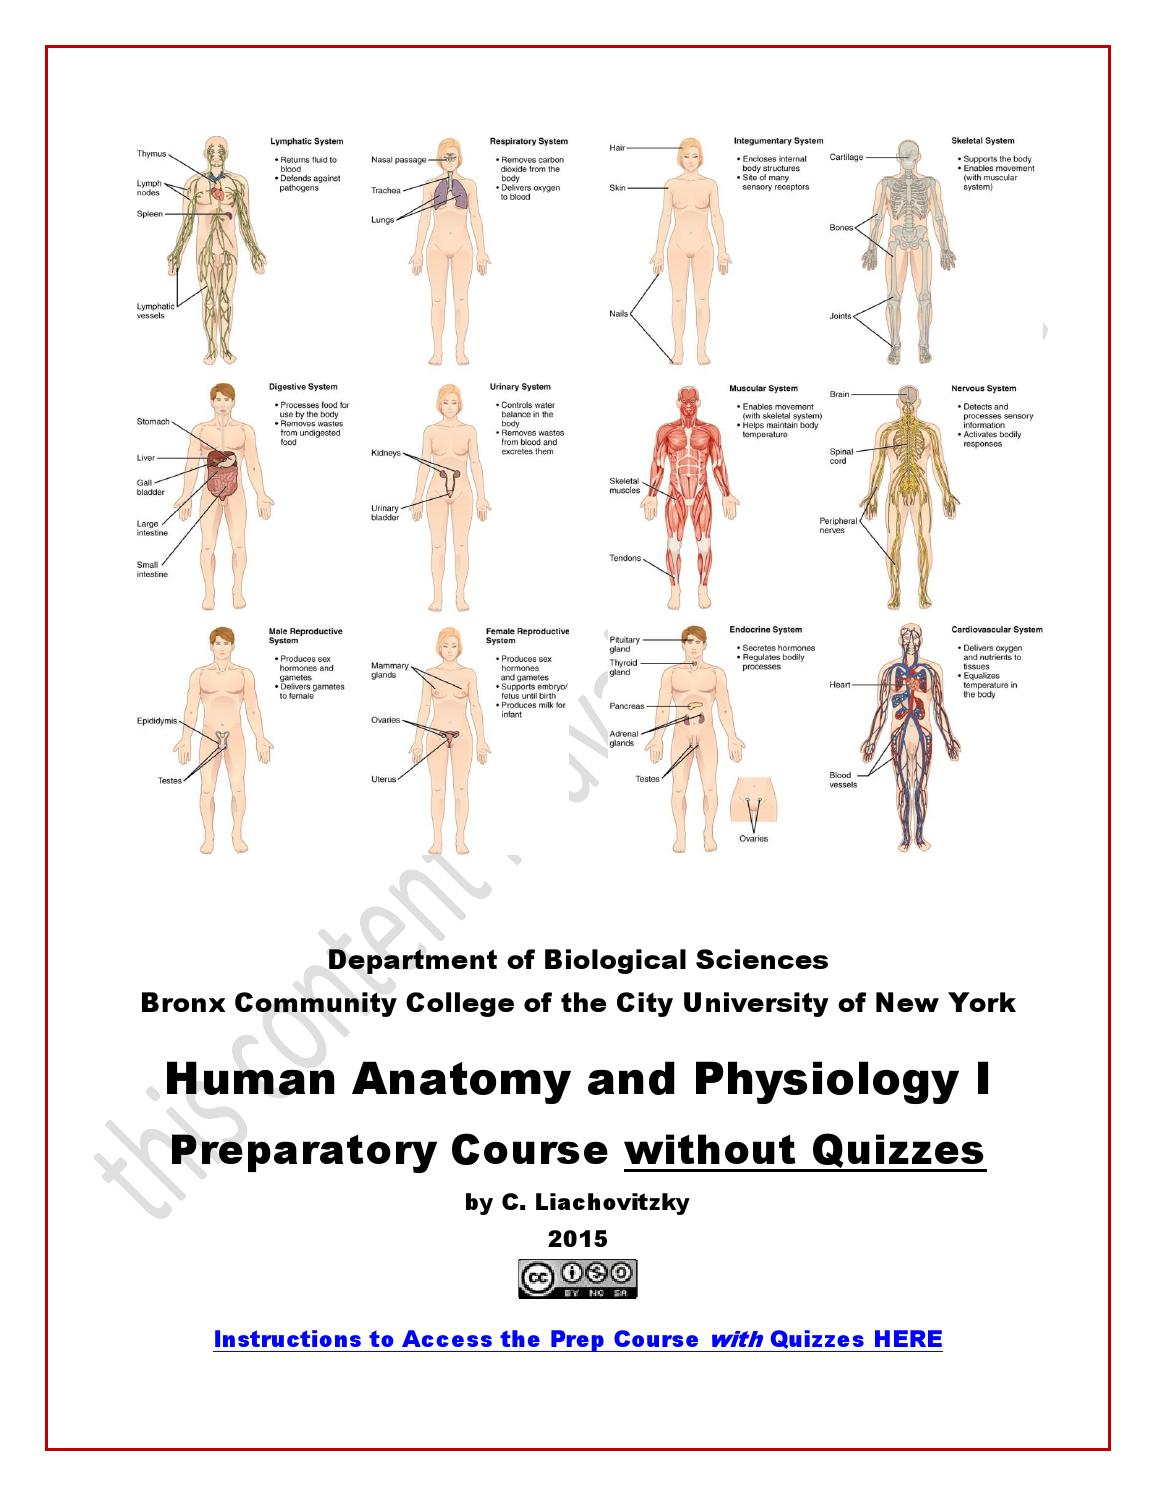 Human Anatomy and Physiology (A&P) Preparatory Course by Human ...